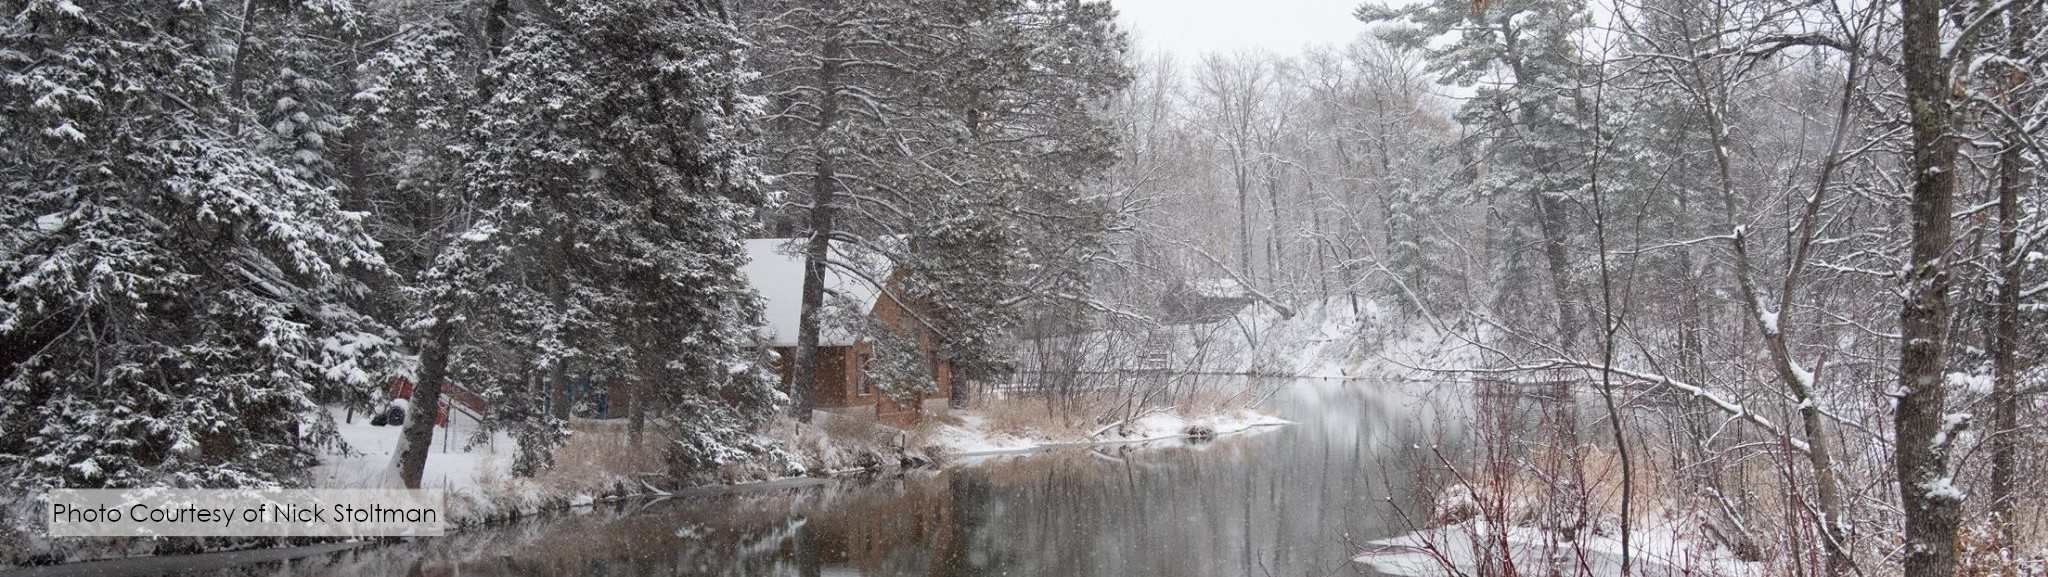 A cabin along an open stream in a snow covered forest